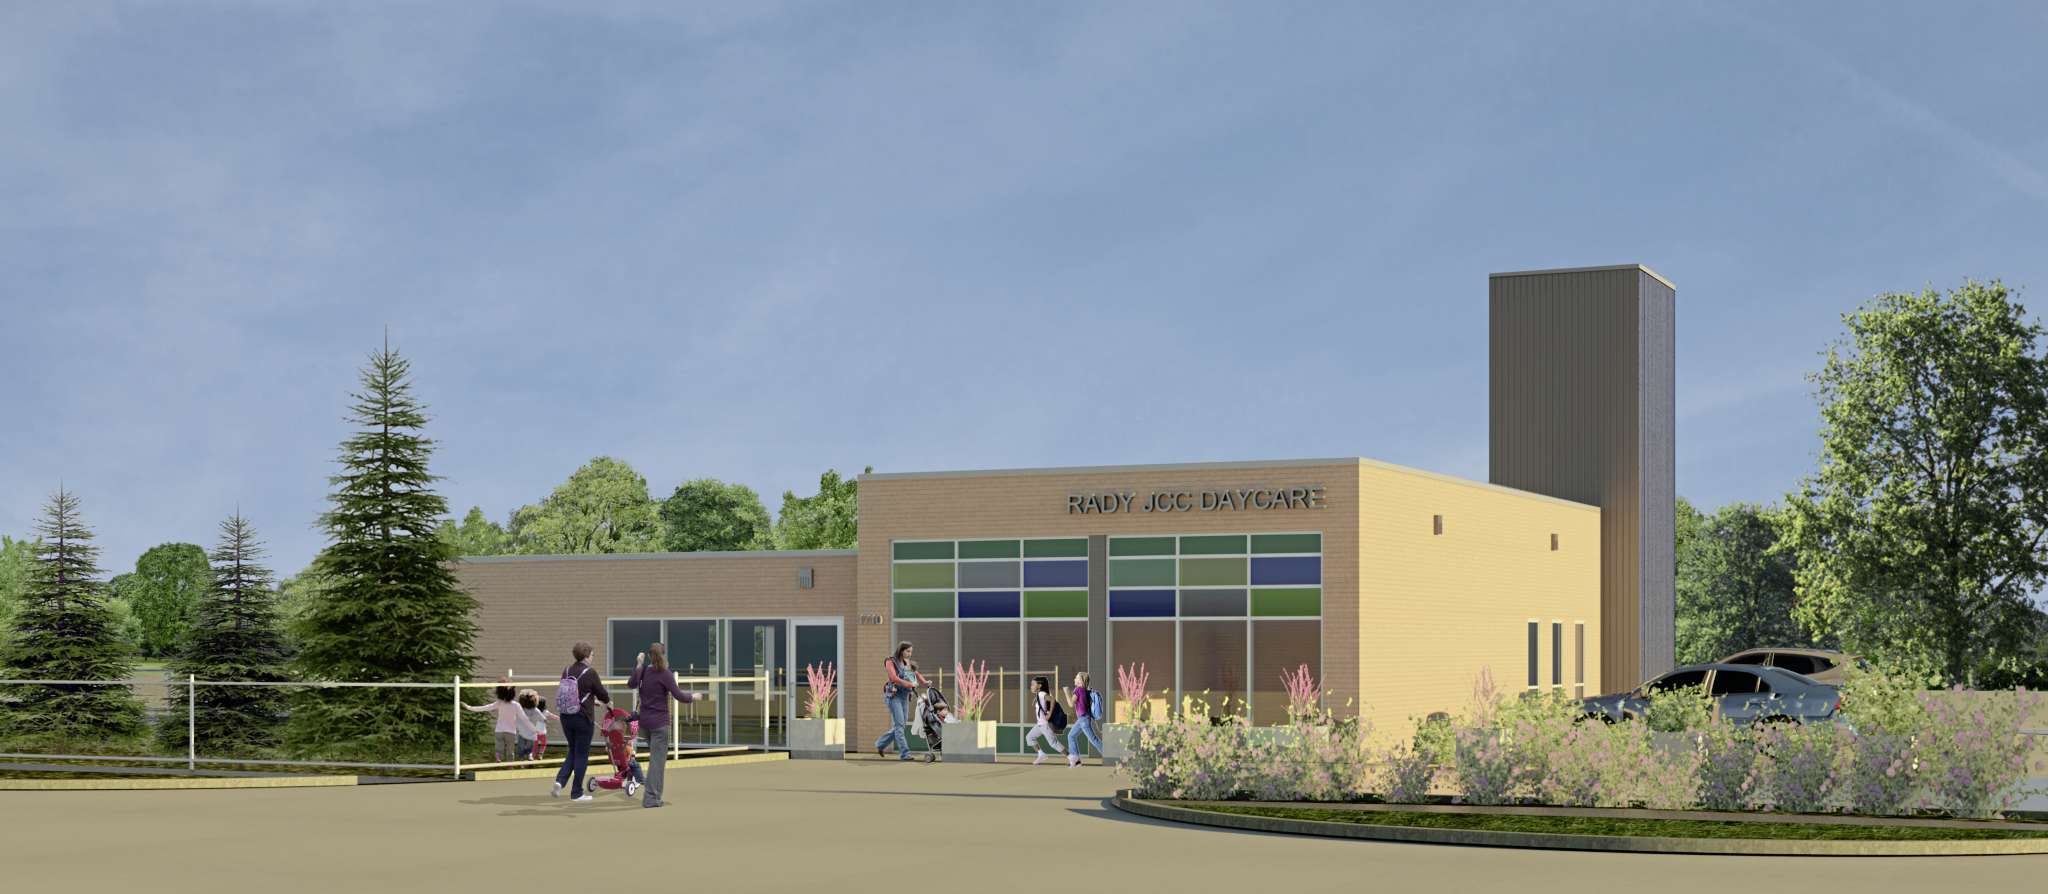 An artist's rendering of the new Rady JCC Daycare at 1710 Grosvenor Avenue set to open in 2016.